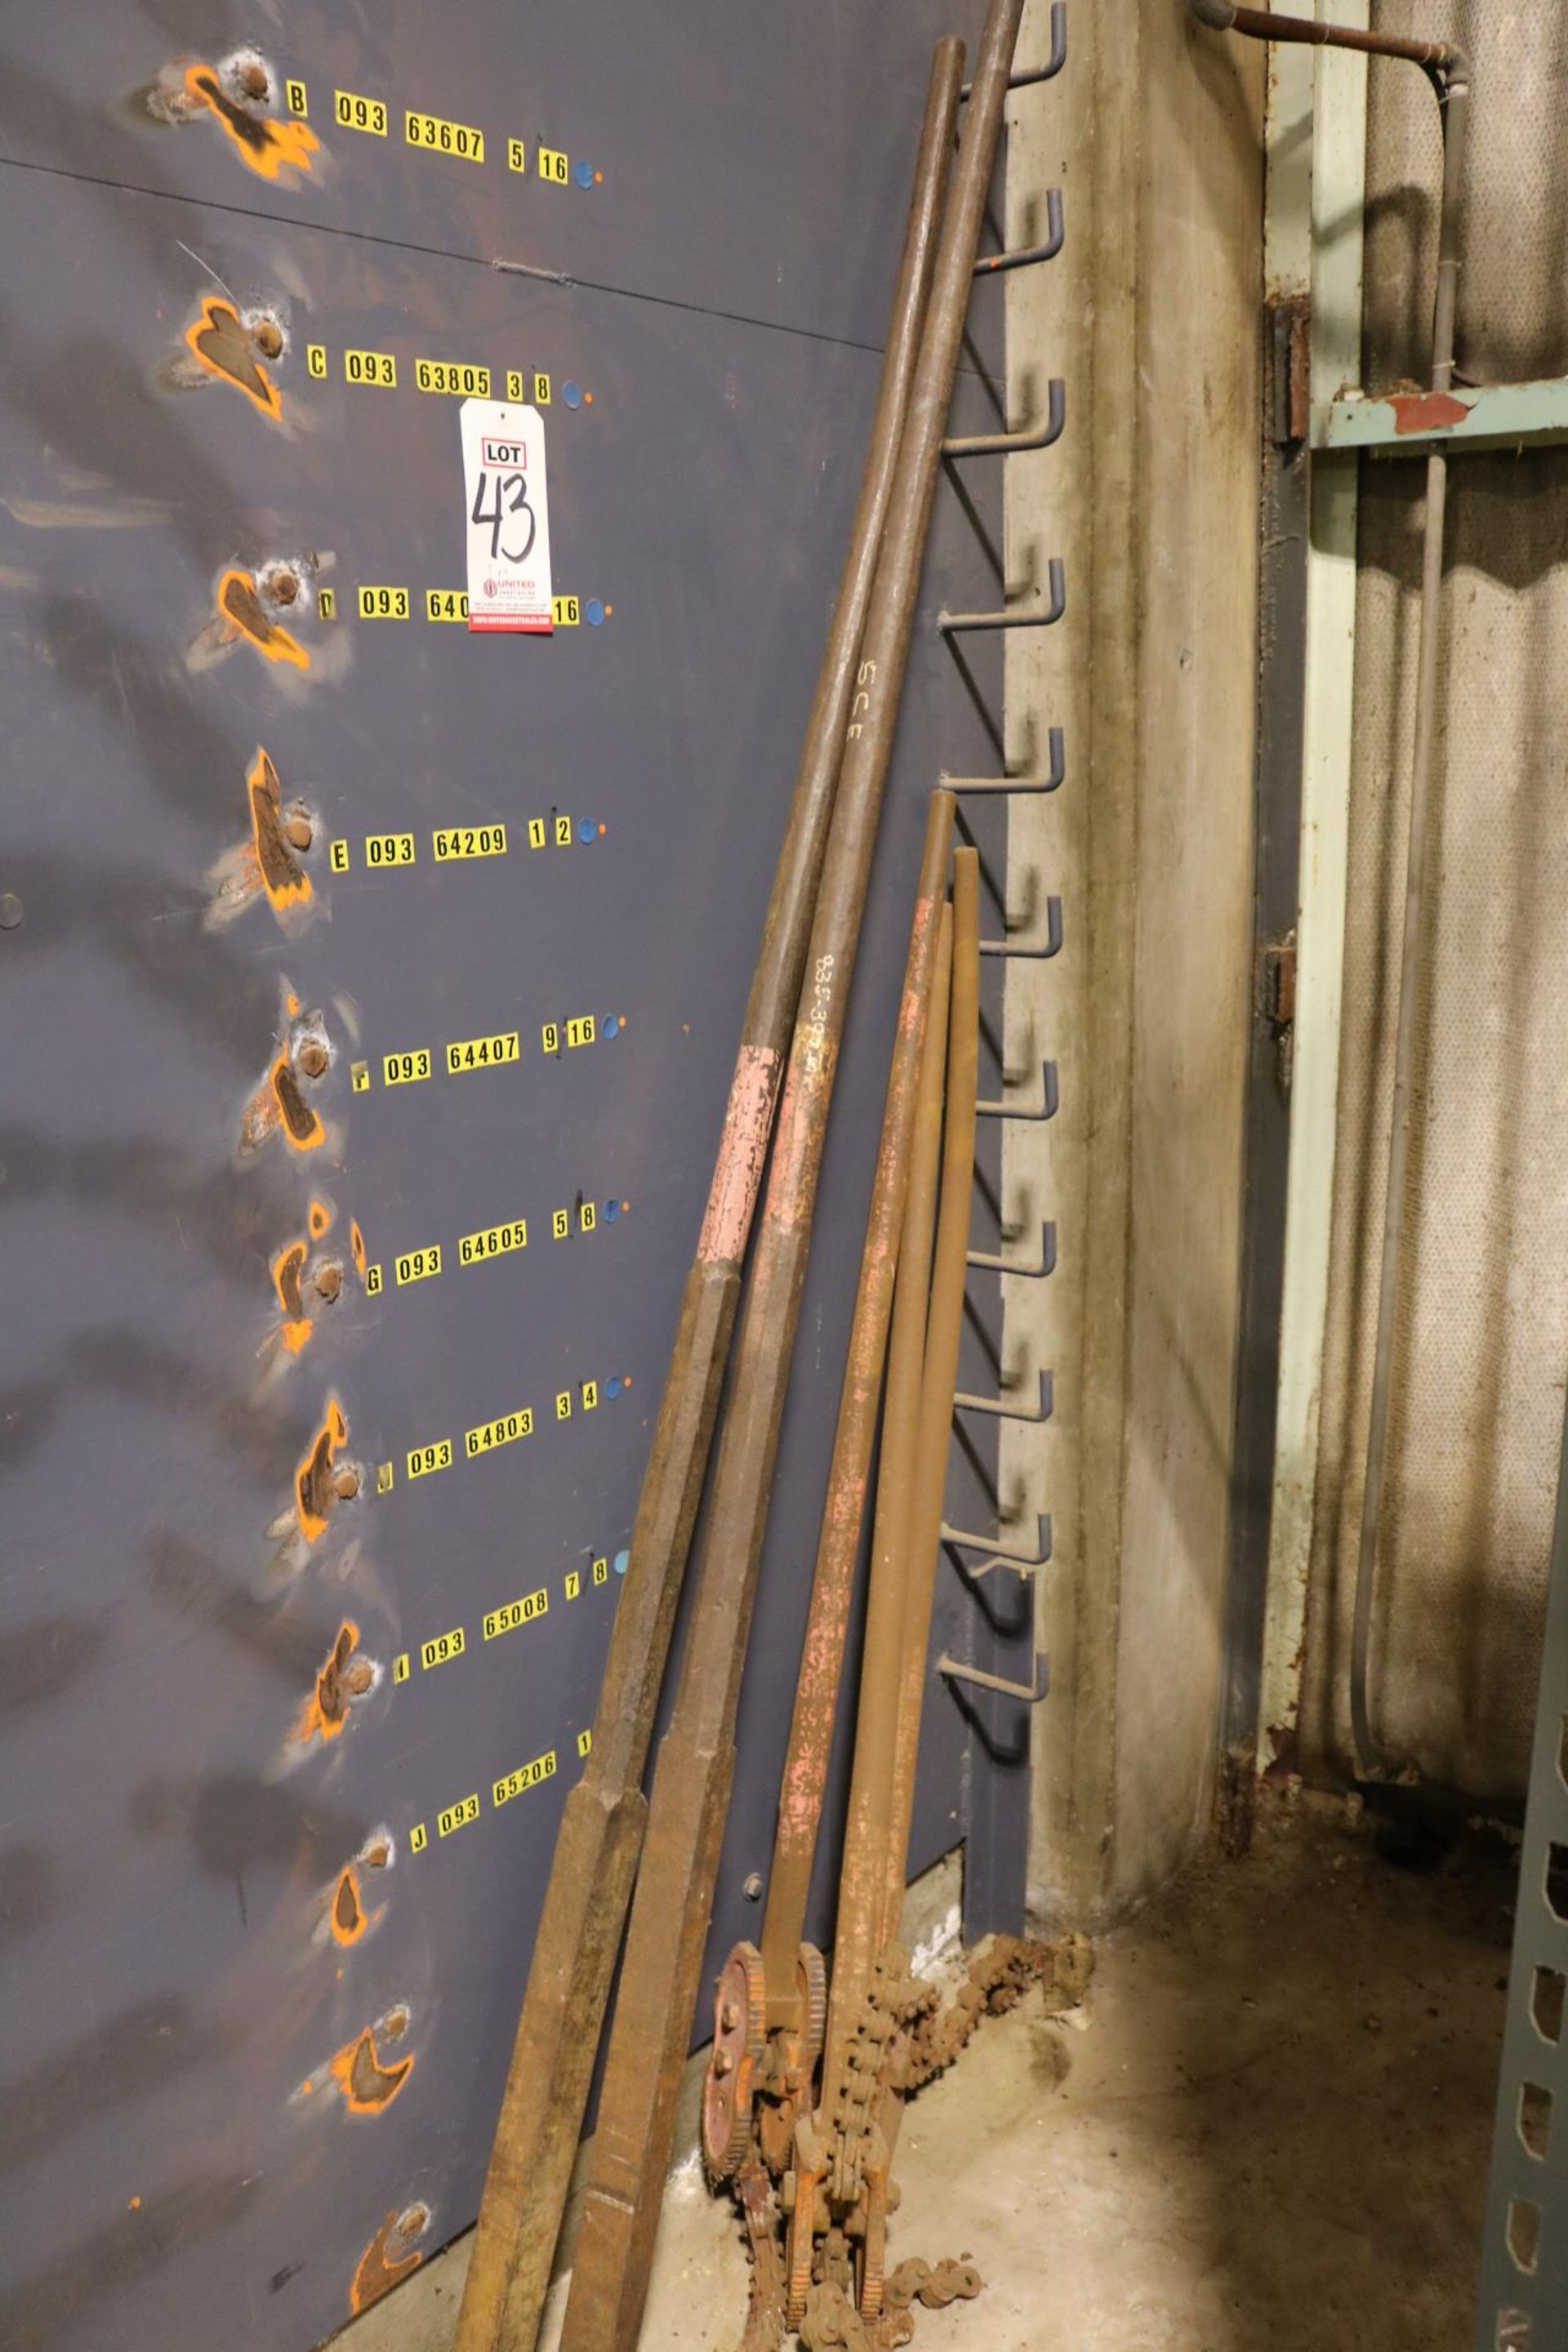 Lot 43 - LOT - (2) LARGE PRY BARS AND (3) LARGE CHAIN PIPE WRENCHES